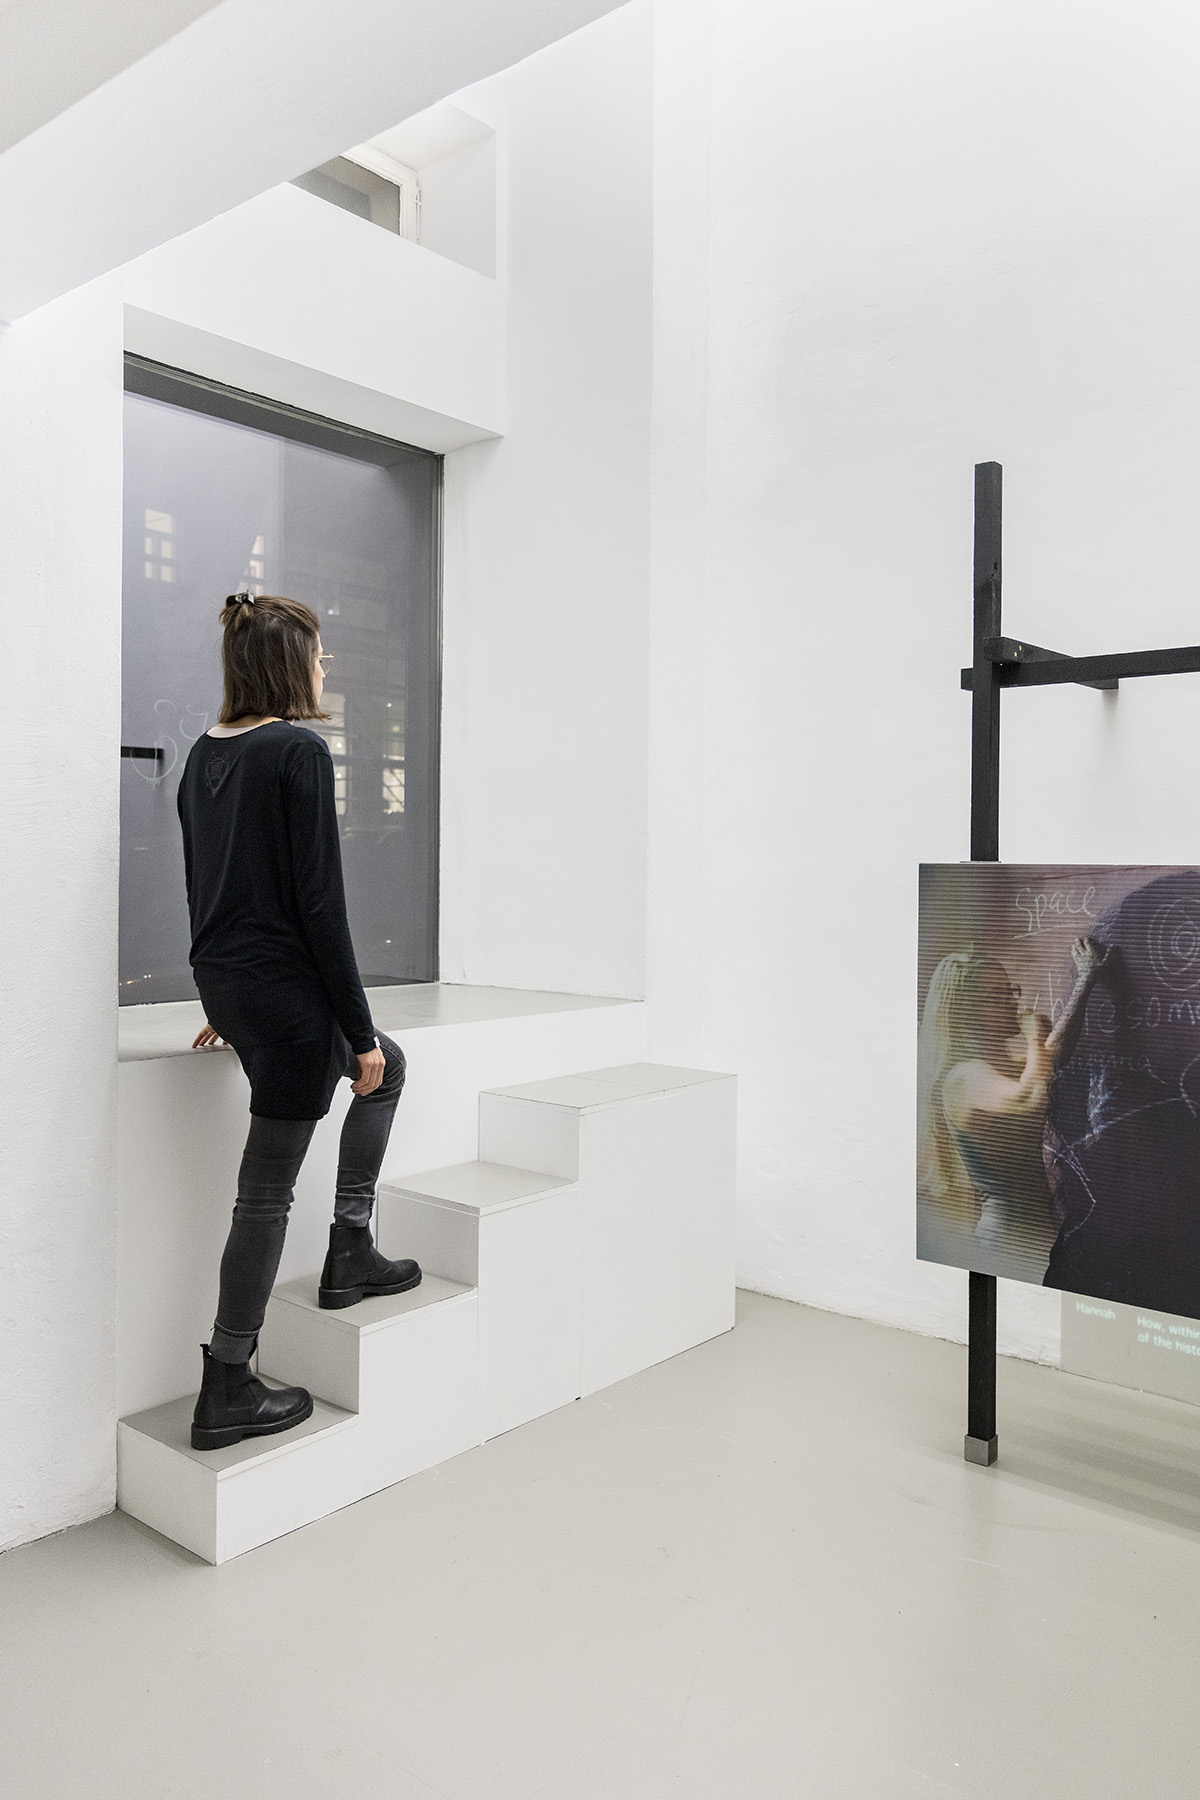 Wendelien van Oldenborgh at Significant Other Vienna